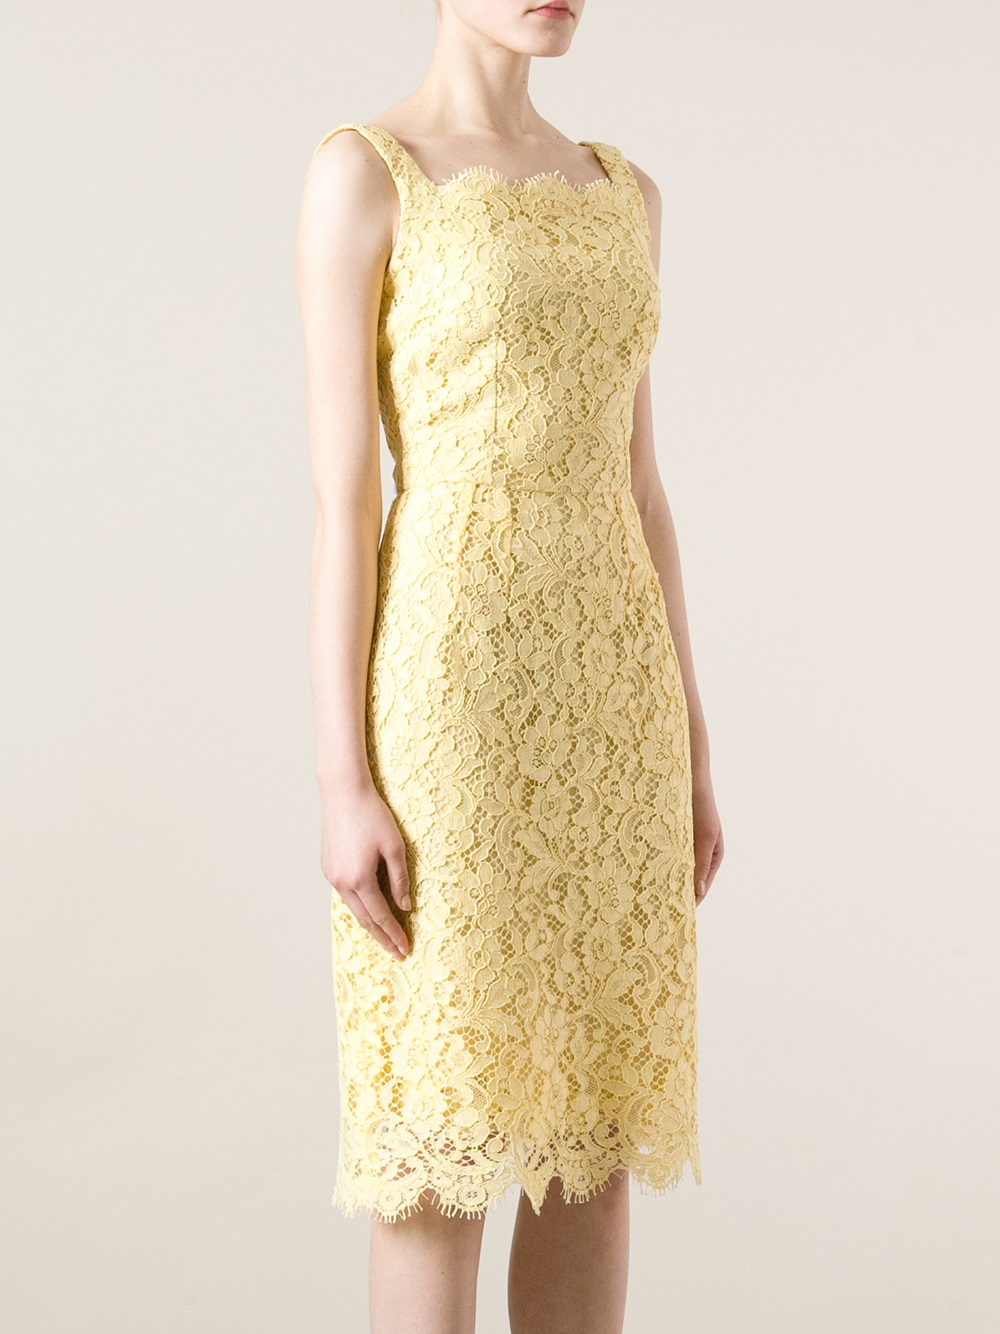 2844c4671e5e Lyst - Dolce   Gabbana Floral Lace Dress in Yellow